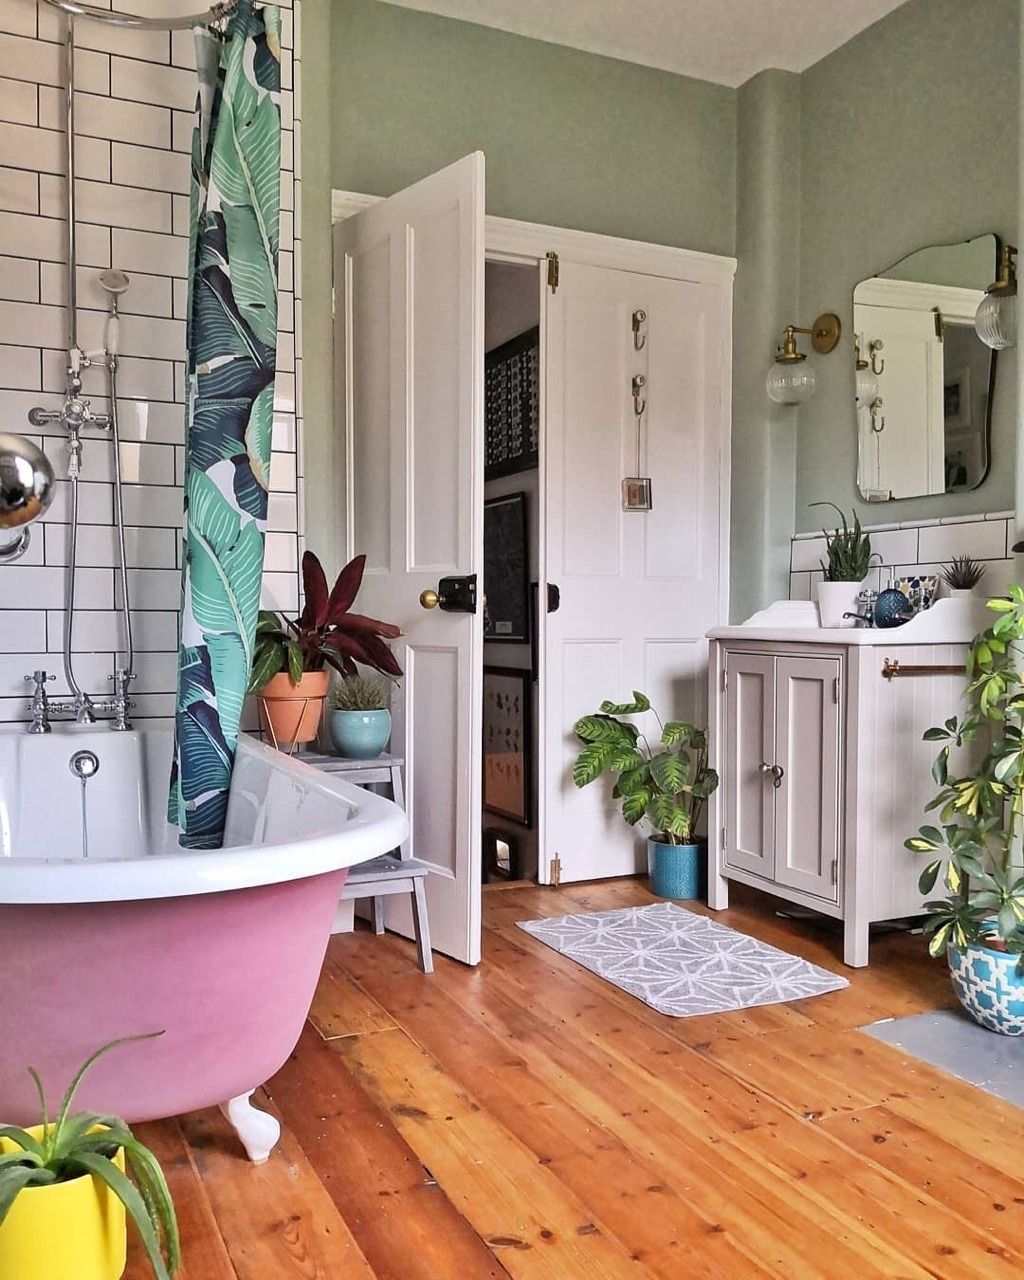 Bathroom inspiration thecraftyfoxthe definitive source for interior designers also home decor outlets rh co pinterest